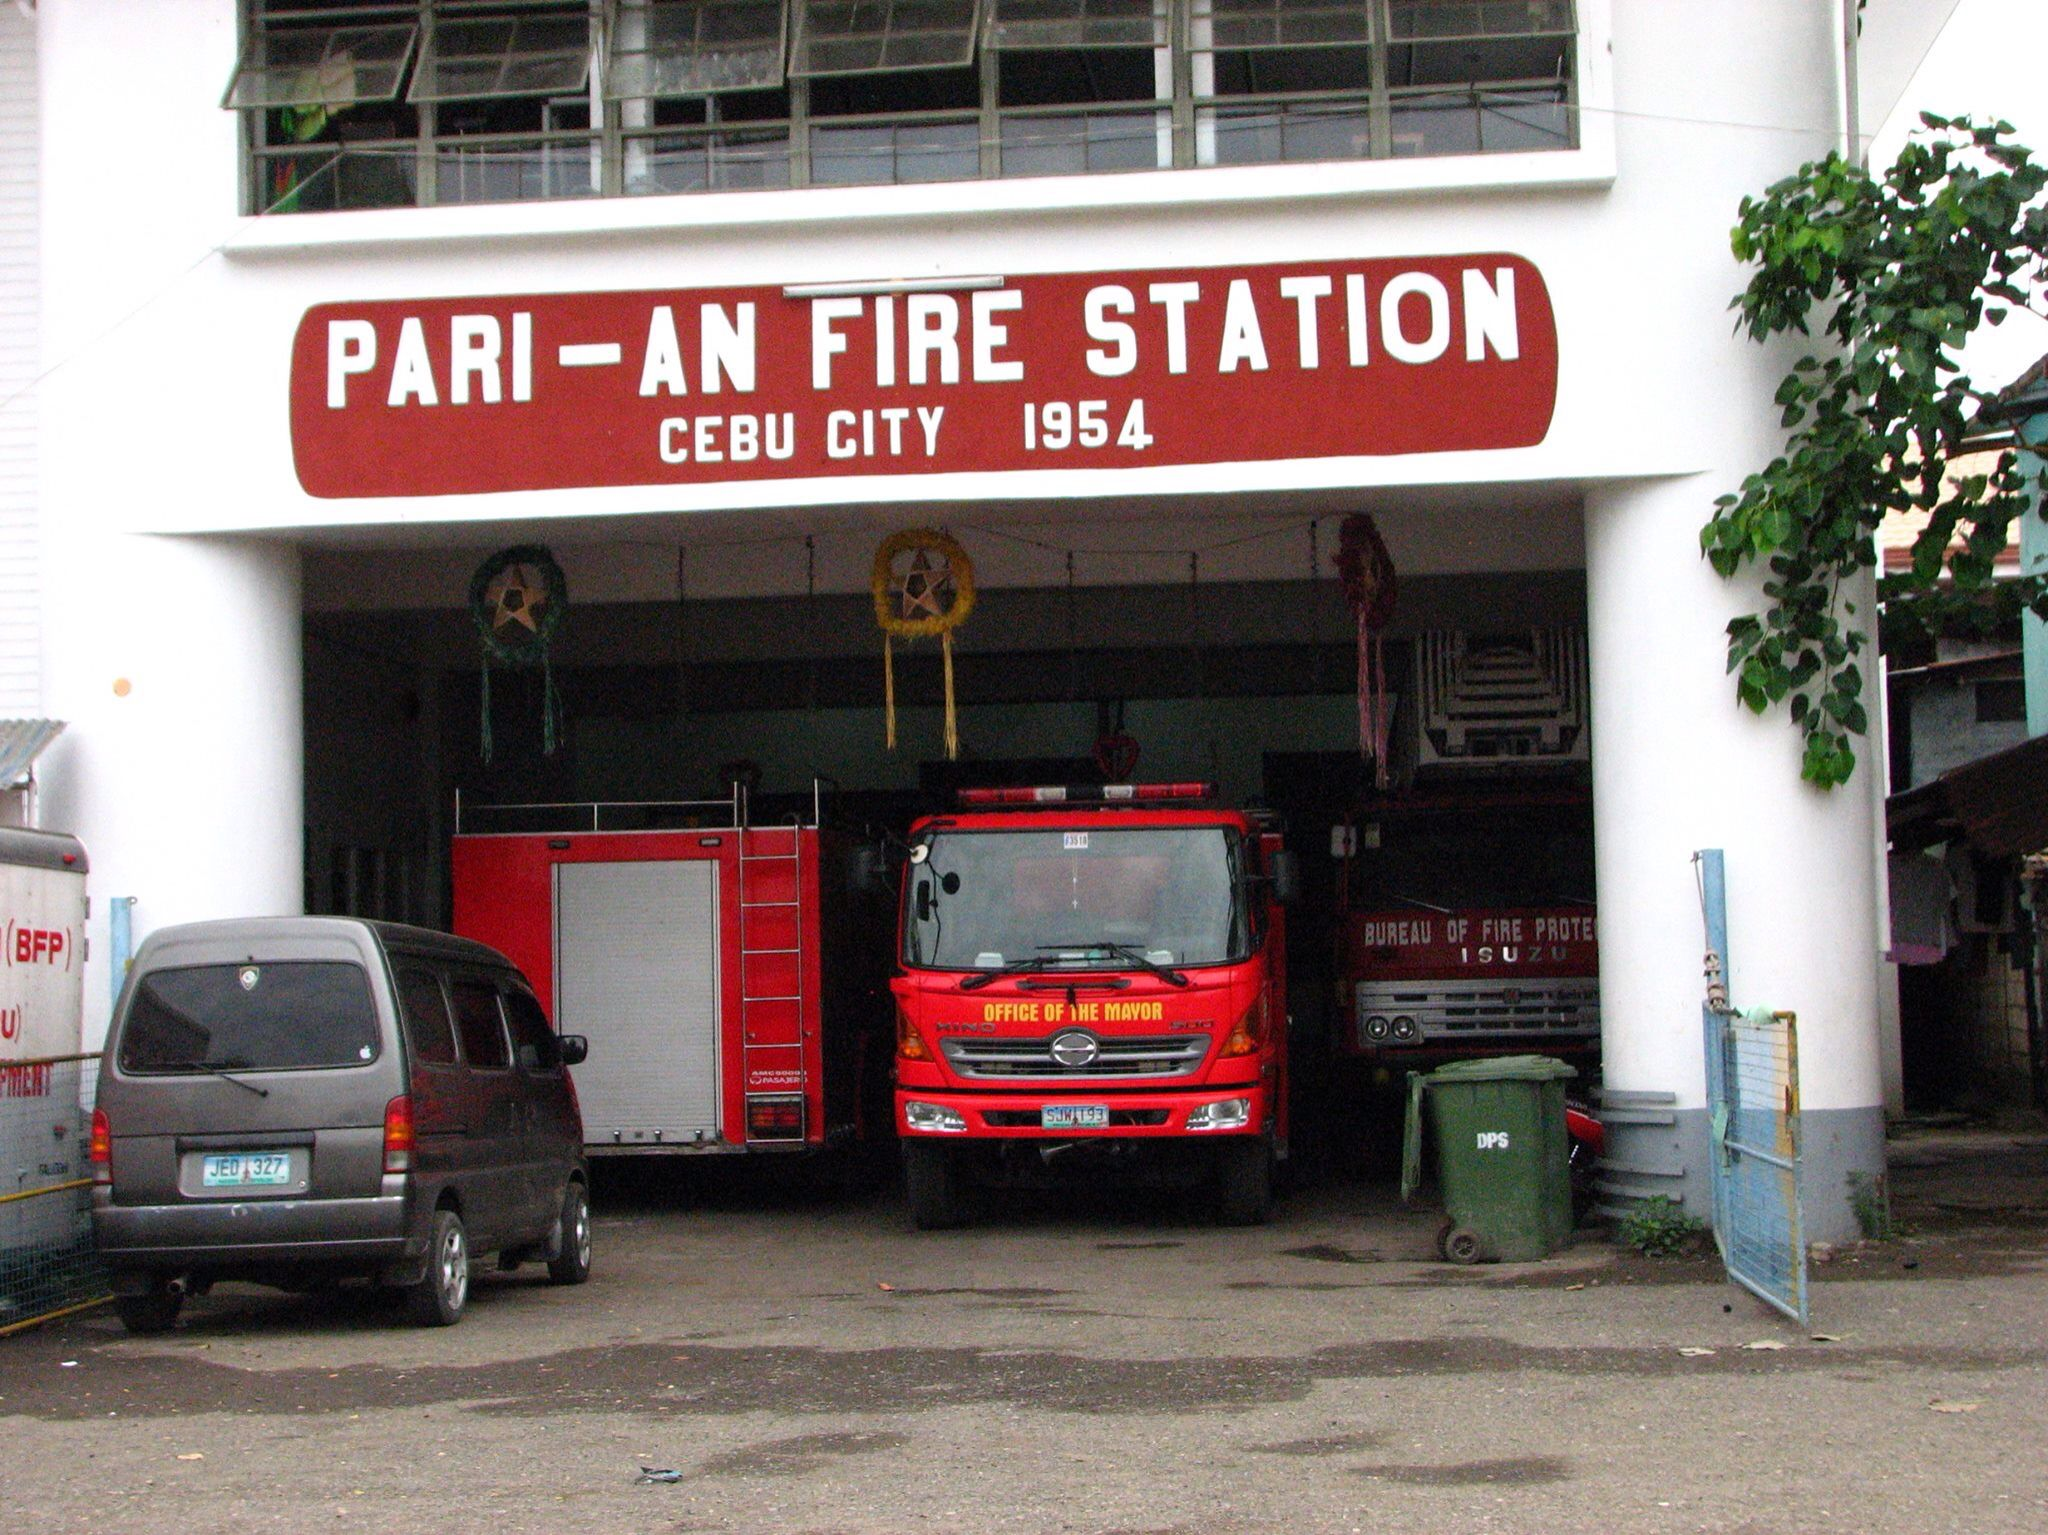 Cebu City, Fire Station | Fire Rescue | Cebu city, Fire, Cebu